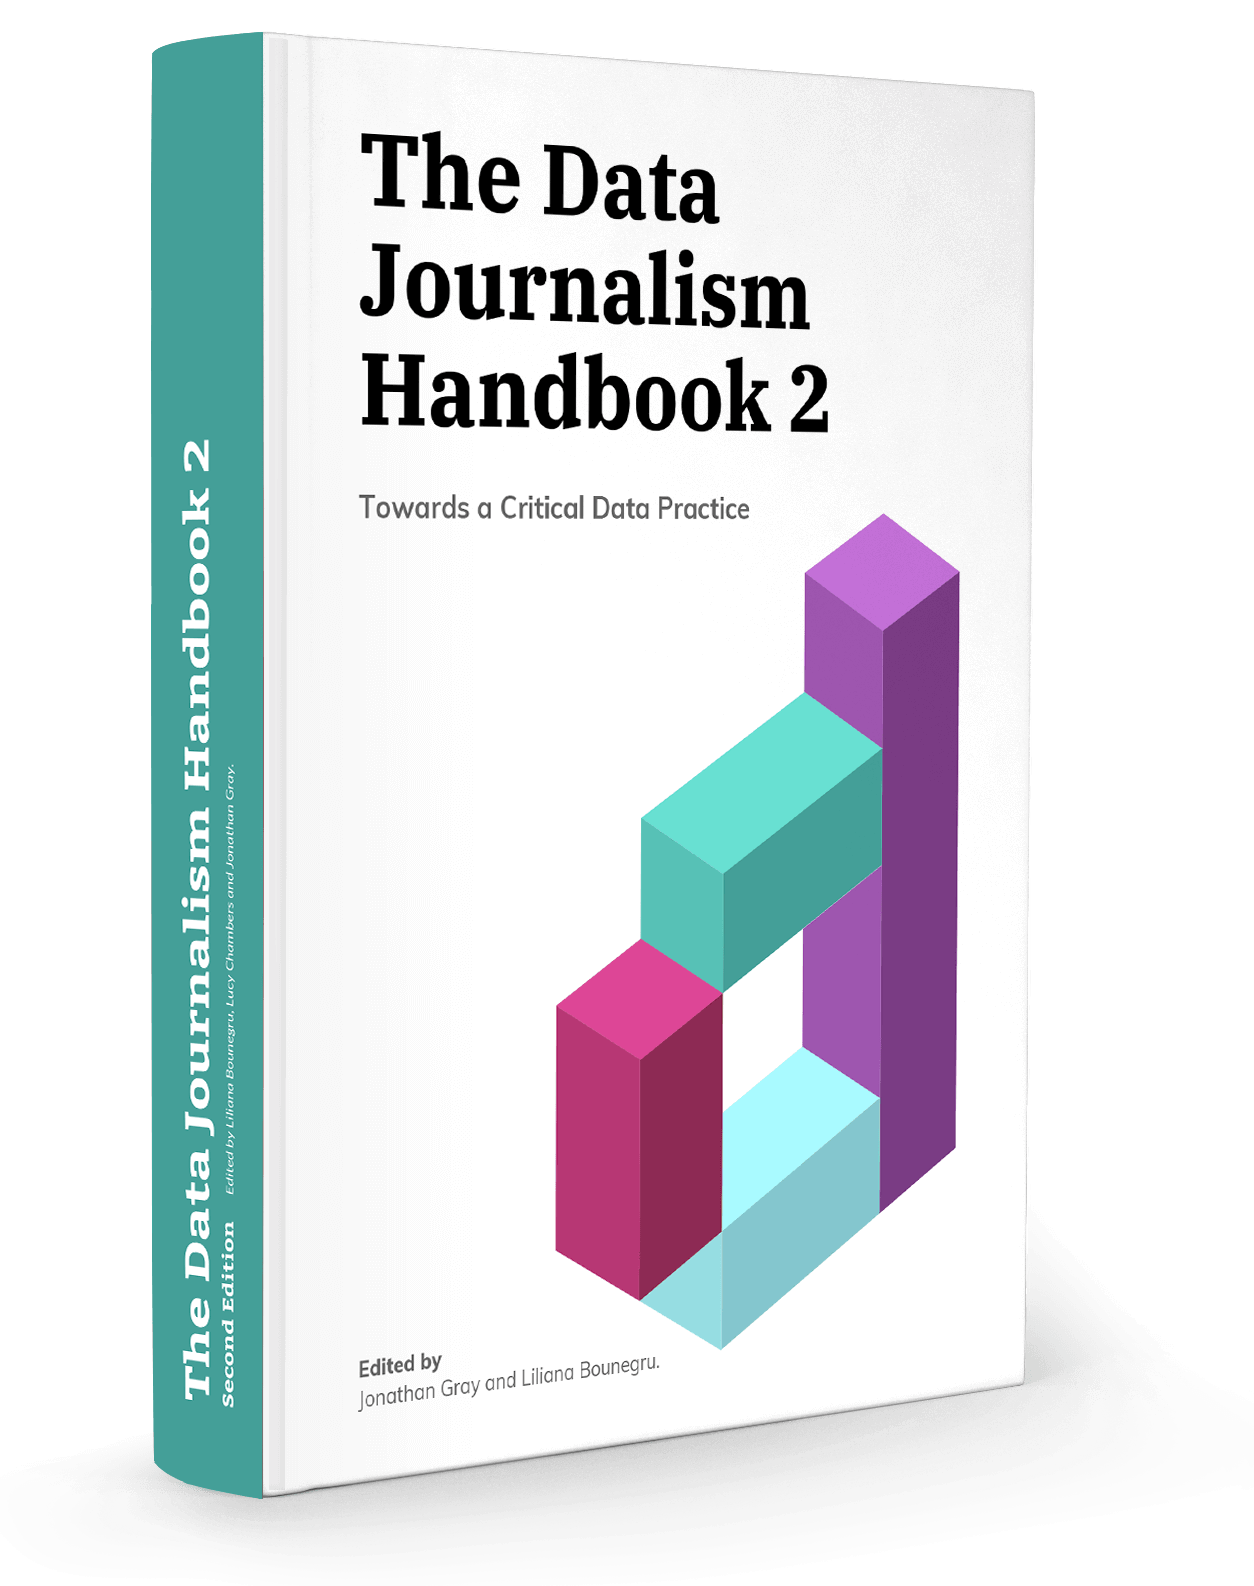 DATA HANDBOOK 2 RIGHT